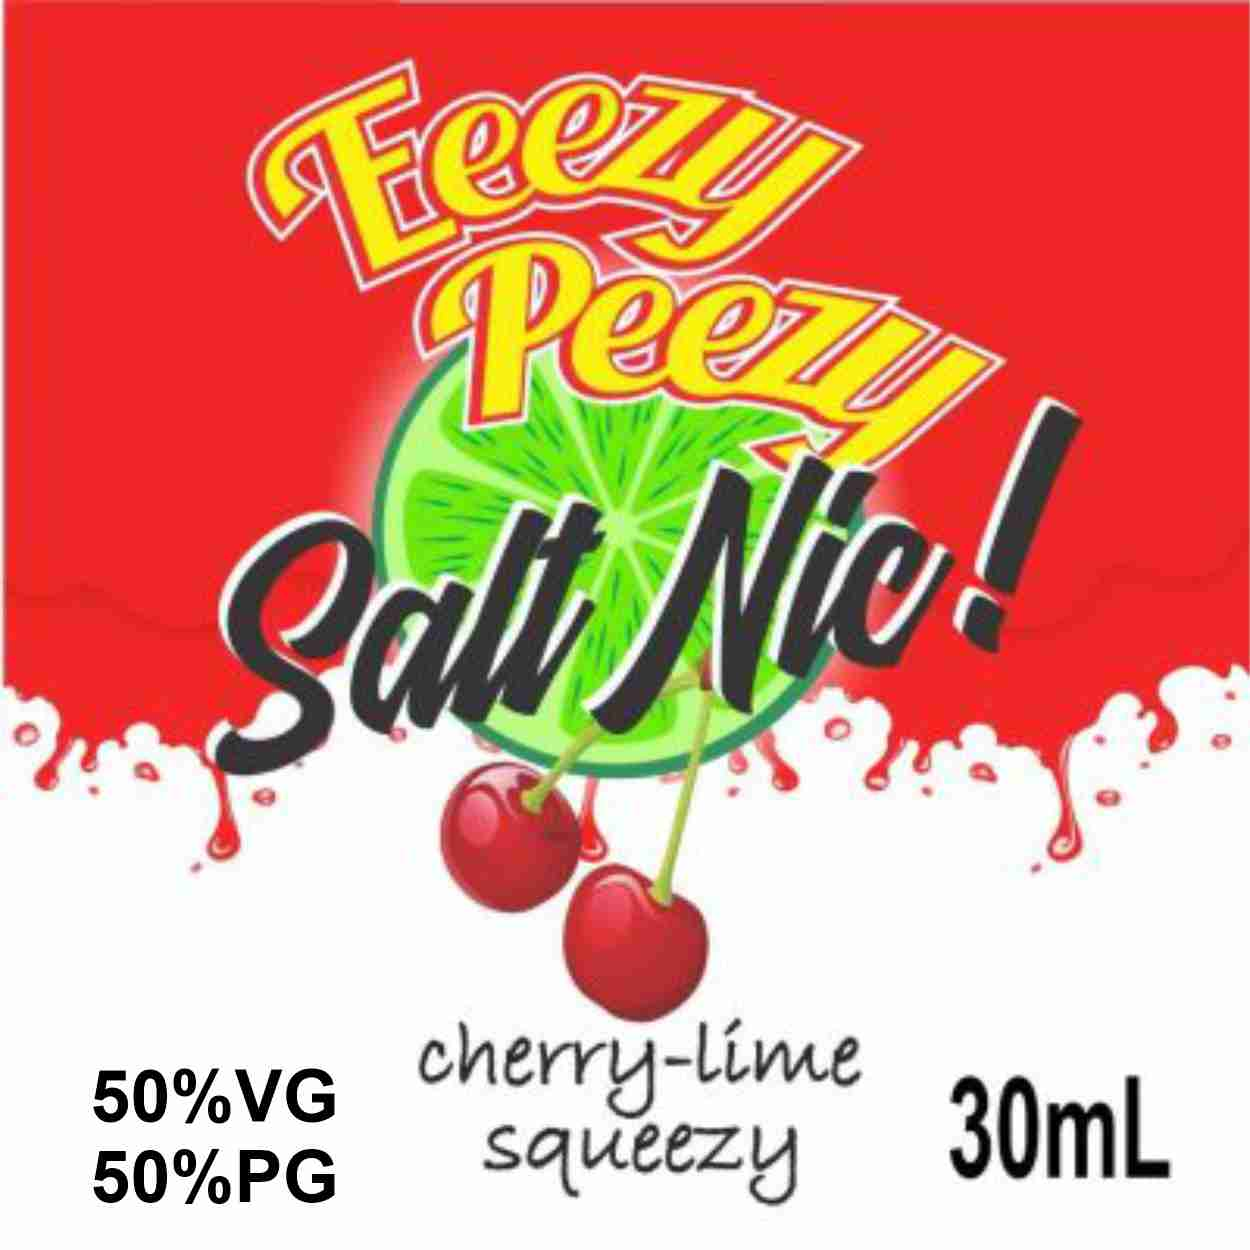 Cherry Lime Squeezy Salt Nic